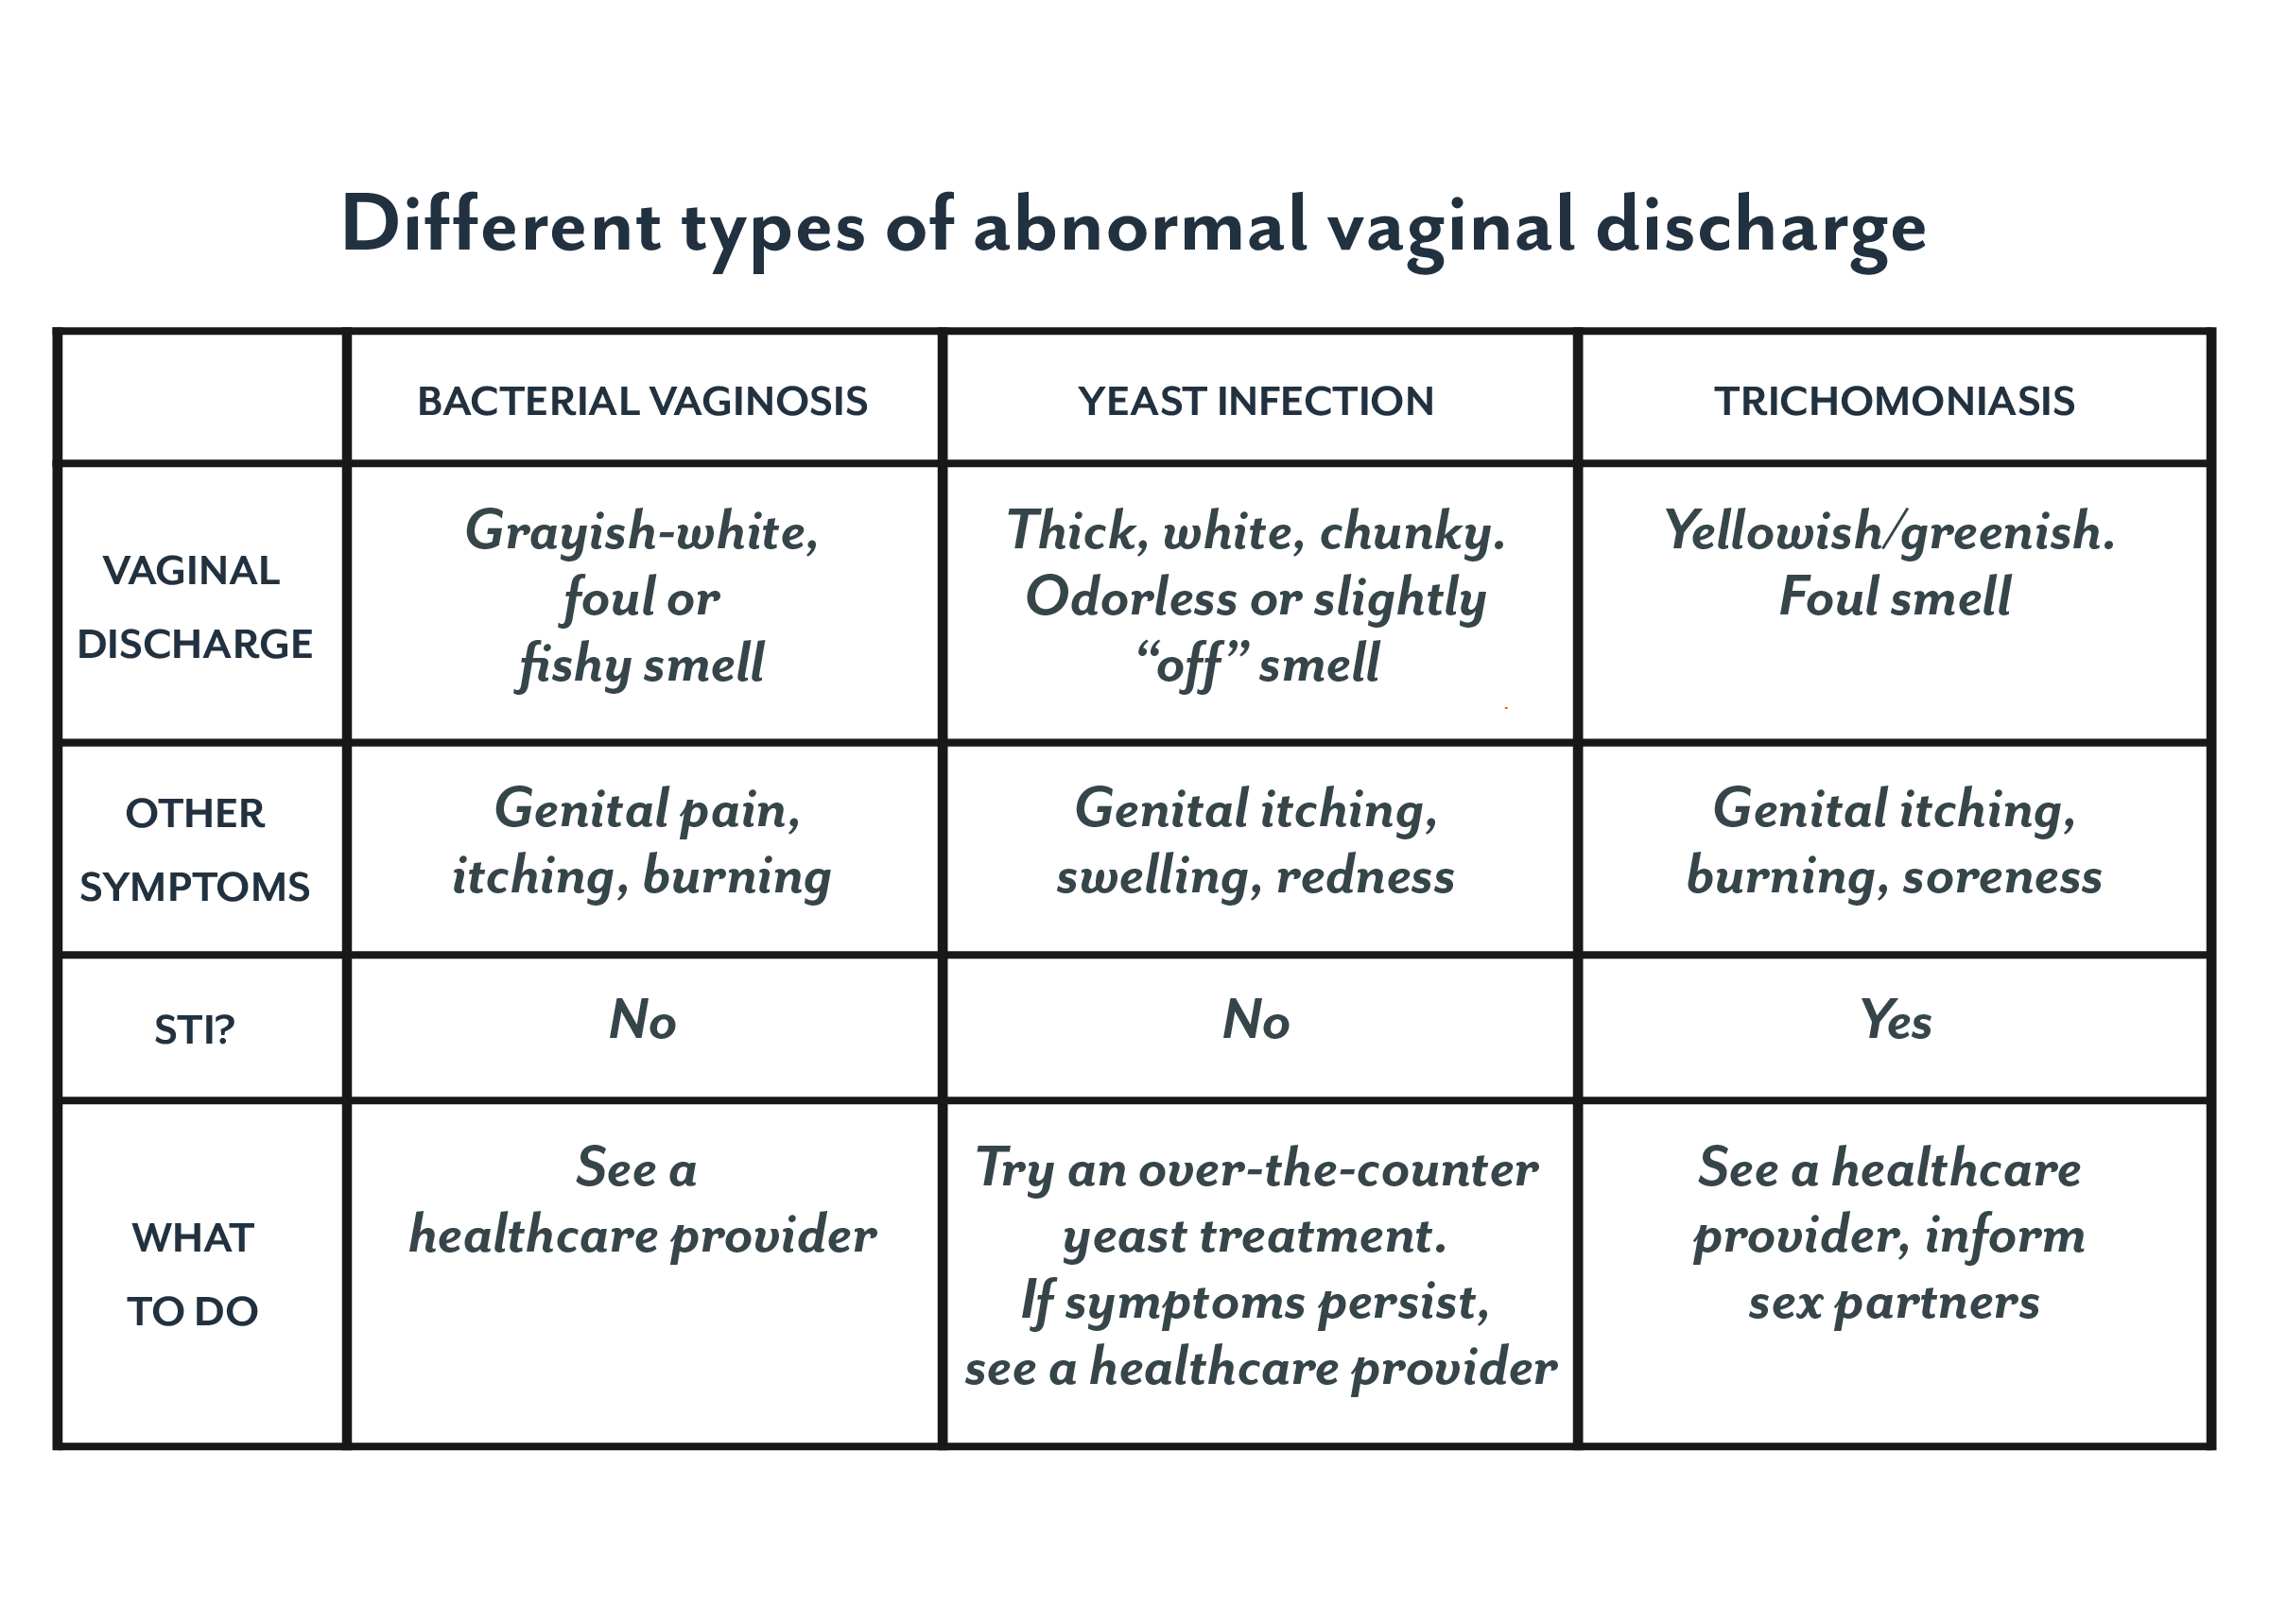 hpv symptoms yellow discharge)